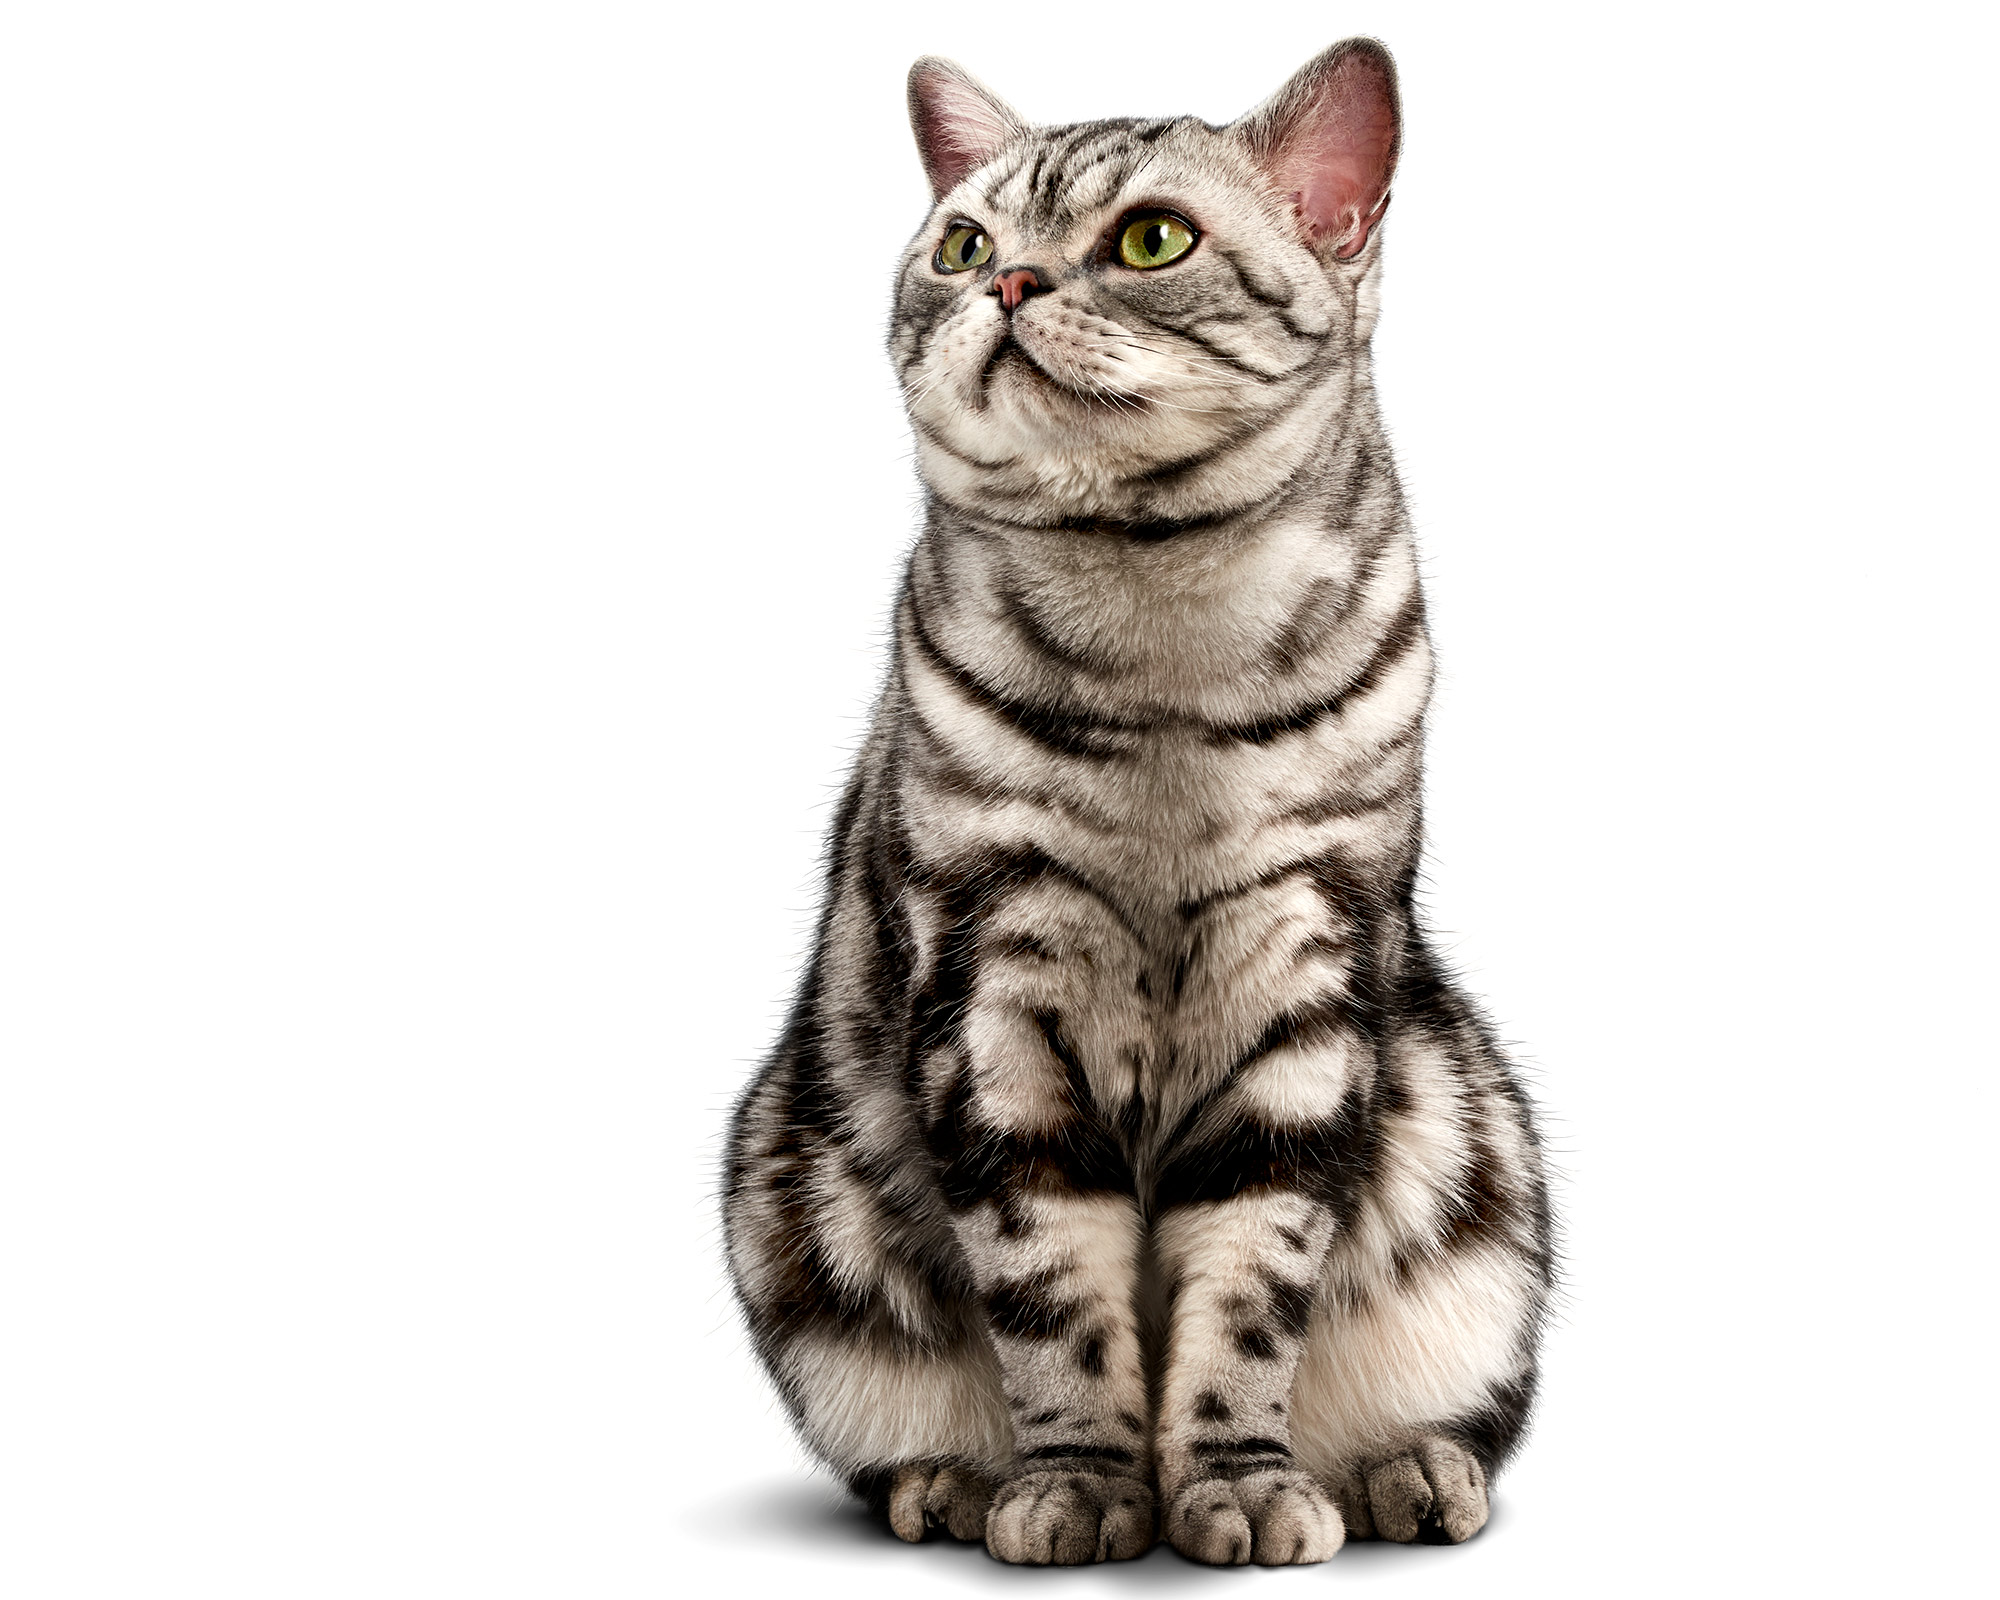 Alex-Silver-Tabby-Cat-Pet-Photo-12725